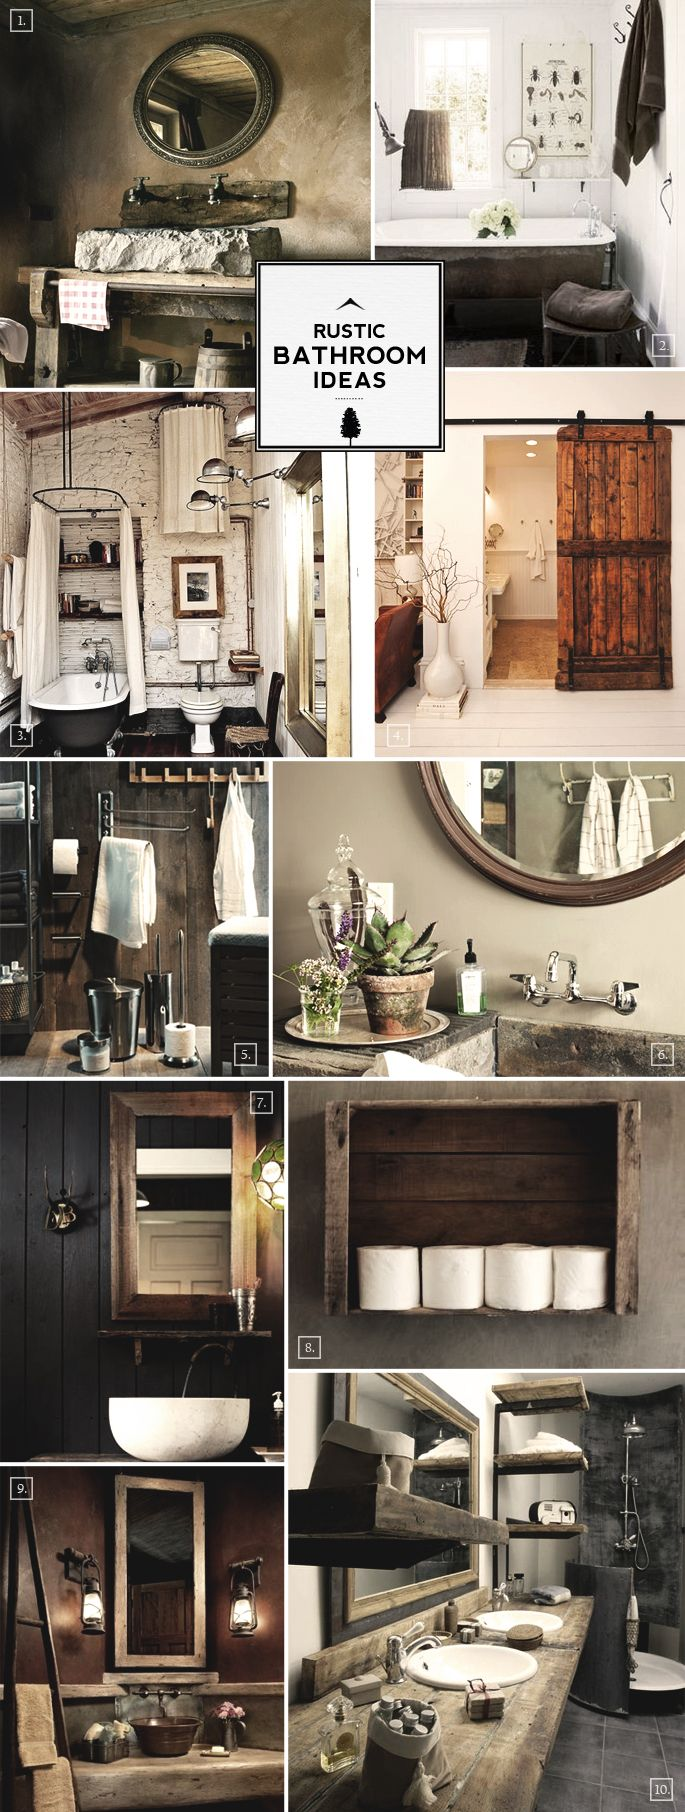 Rustic bathroom decor on pinterest pallet shelf bathroom Rustic bathroom decor ideas